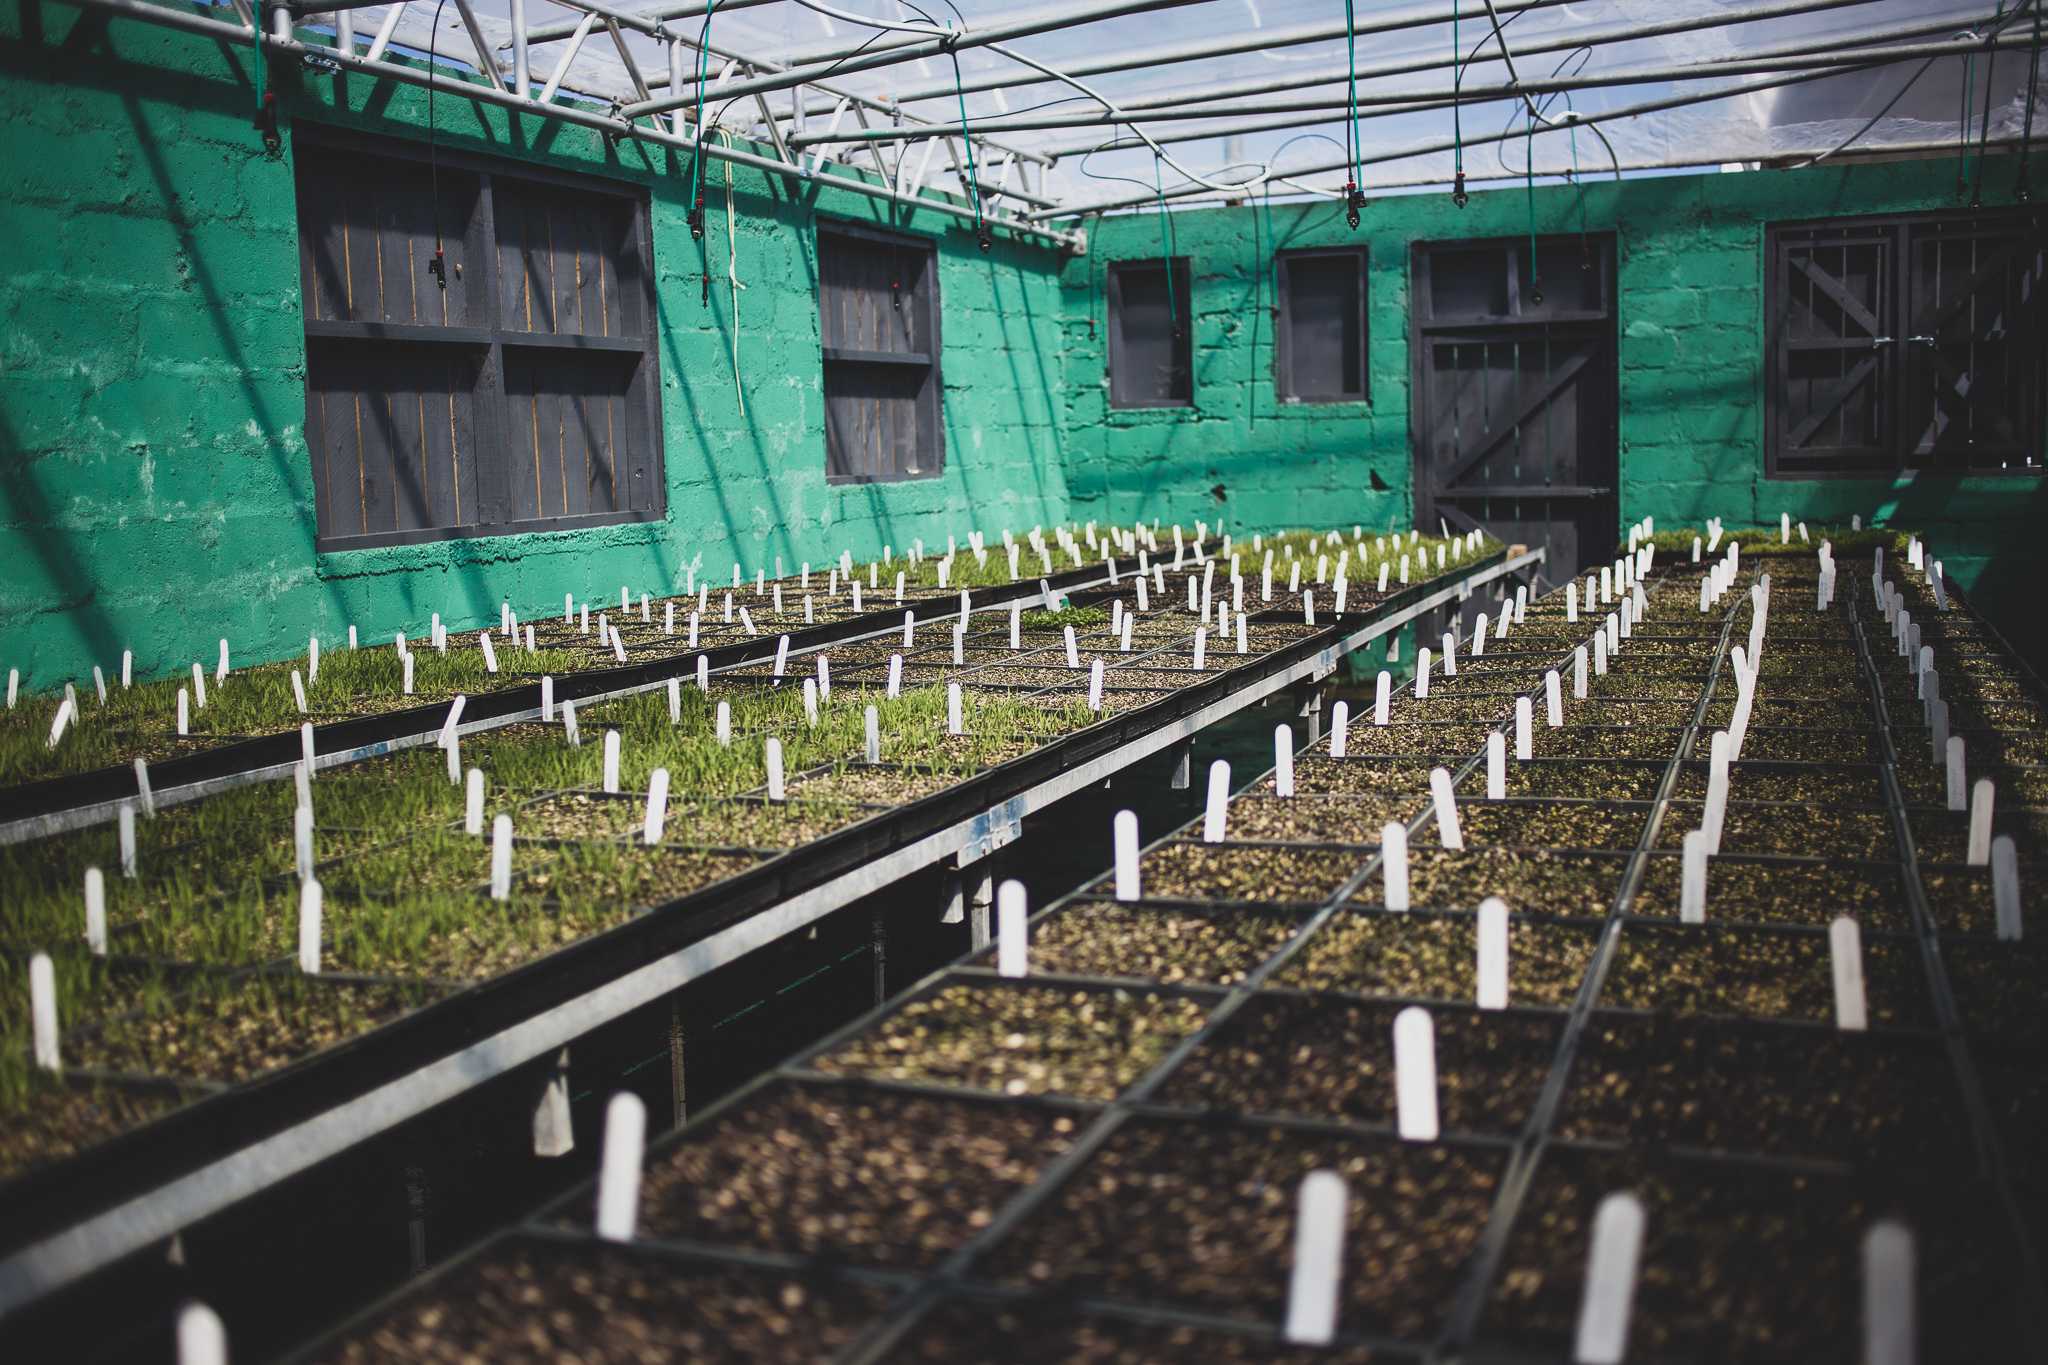 4. Germination - Once sown, our trays sit in the prop shed under an irrigation system to germinate